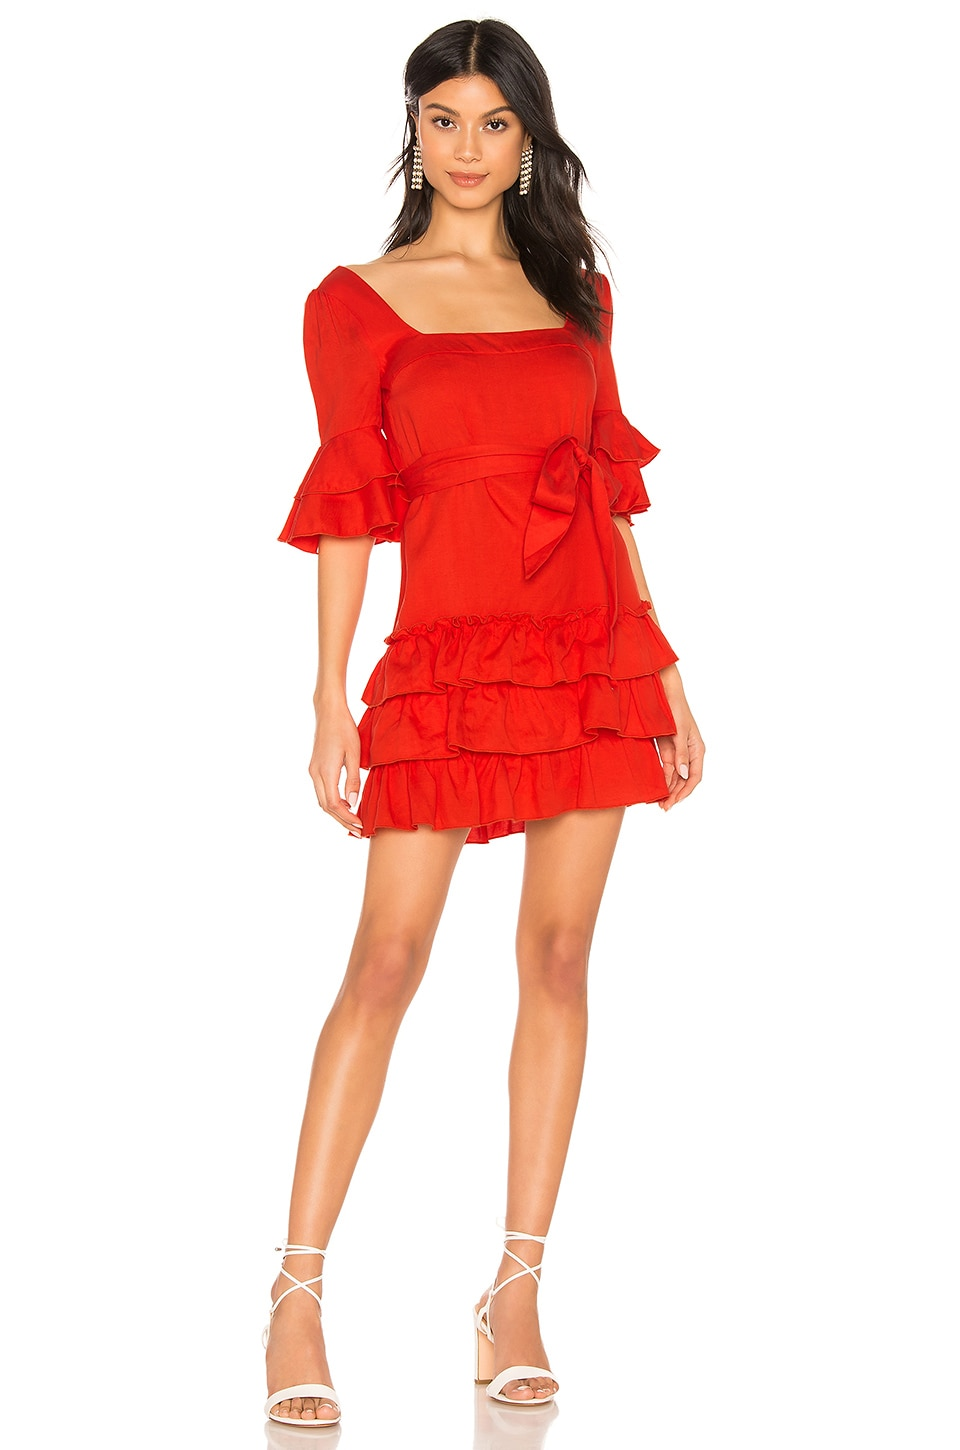 MAJORELLE Olin Dress in Red